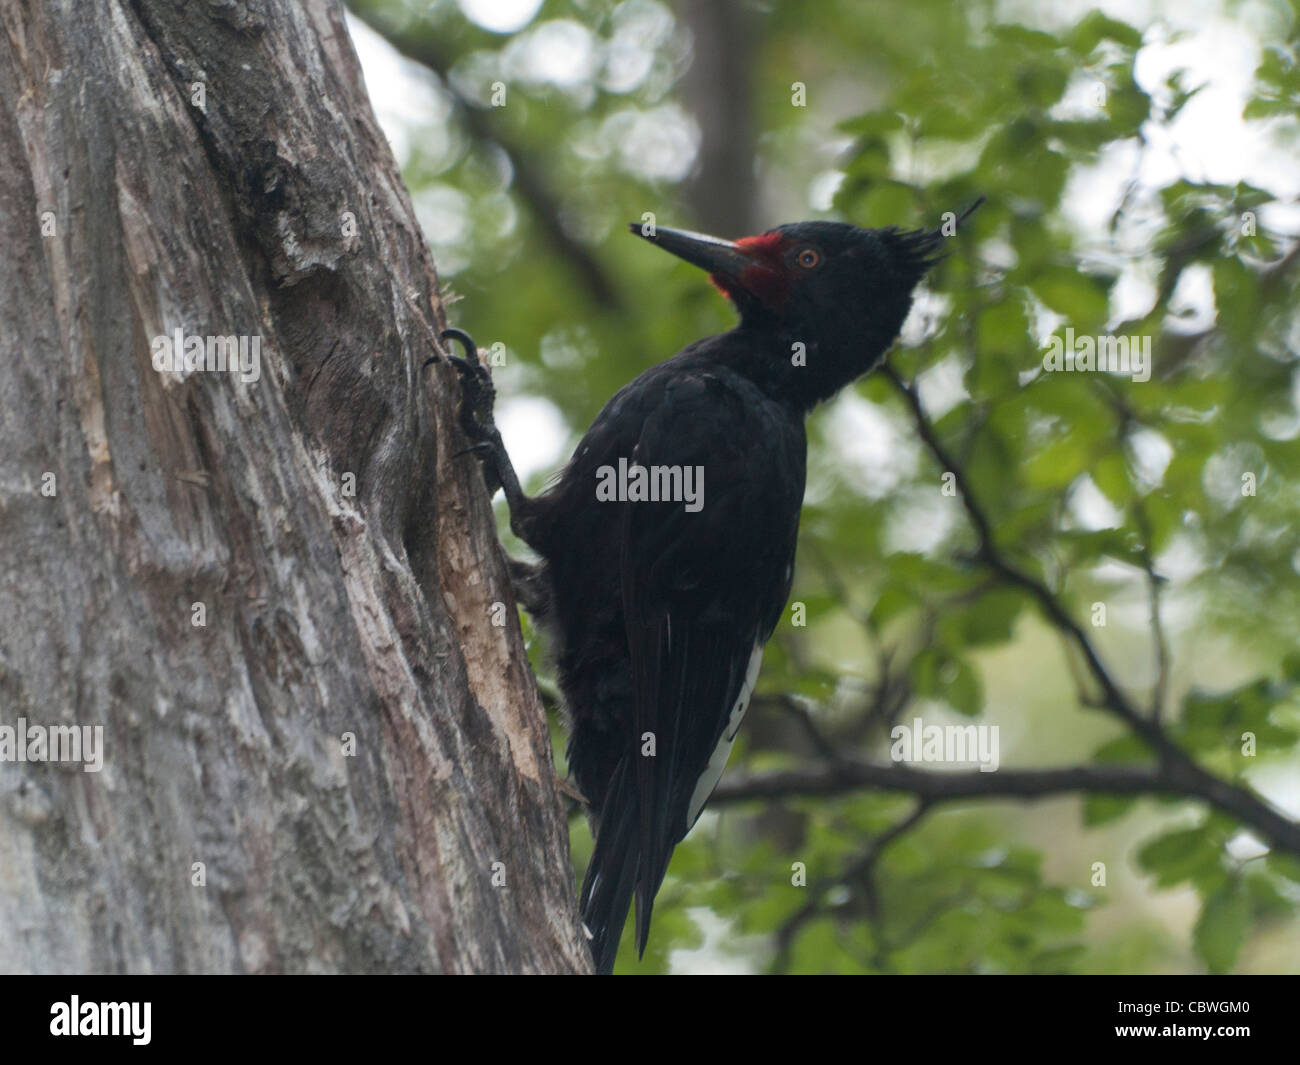 OLYMPUS DIGITAL CAMERA Photo of a Magellanic woodpecker (Campephilus magellanicus) female.  In your natural environment - Stock Image